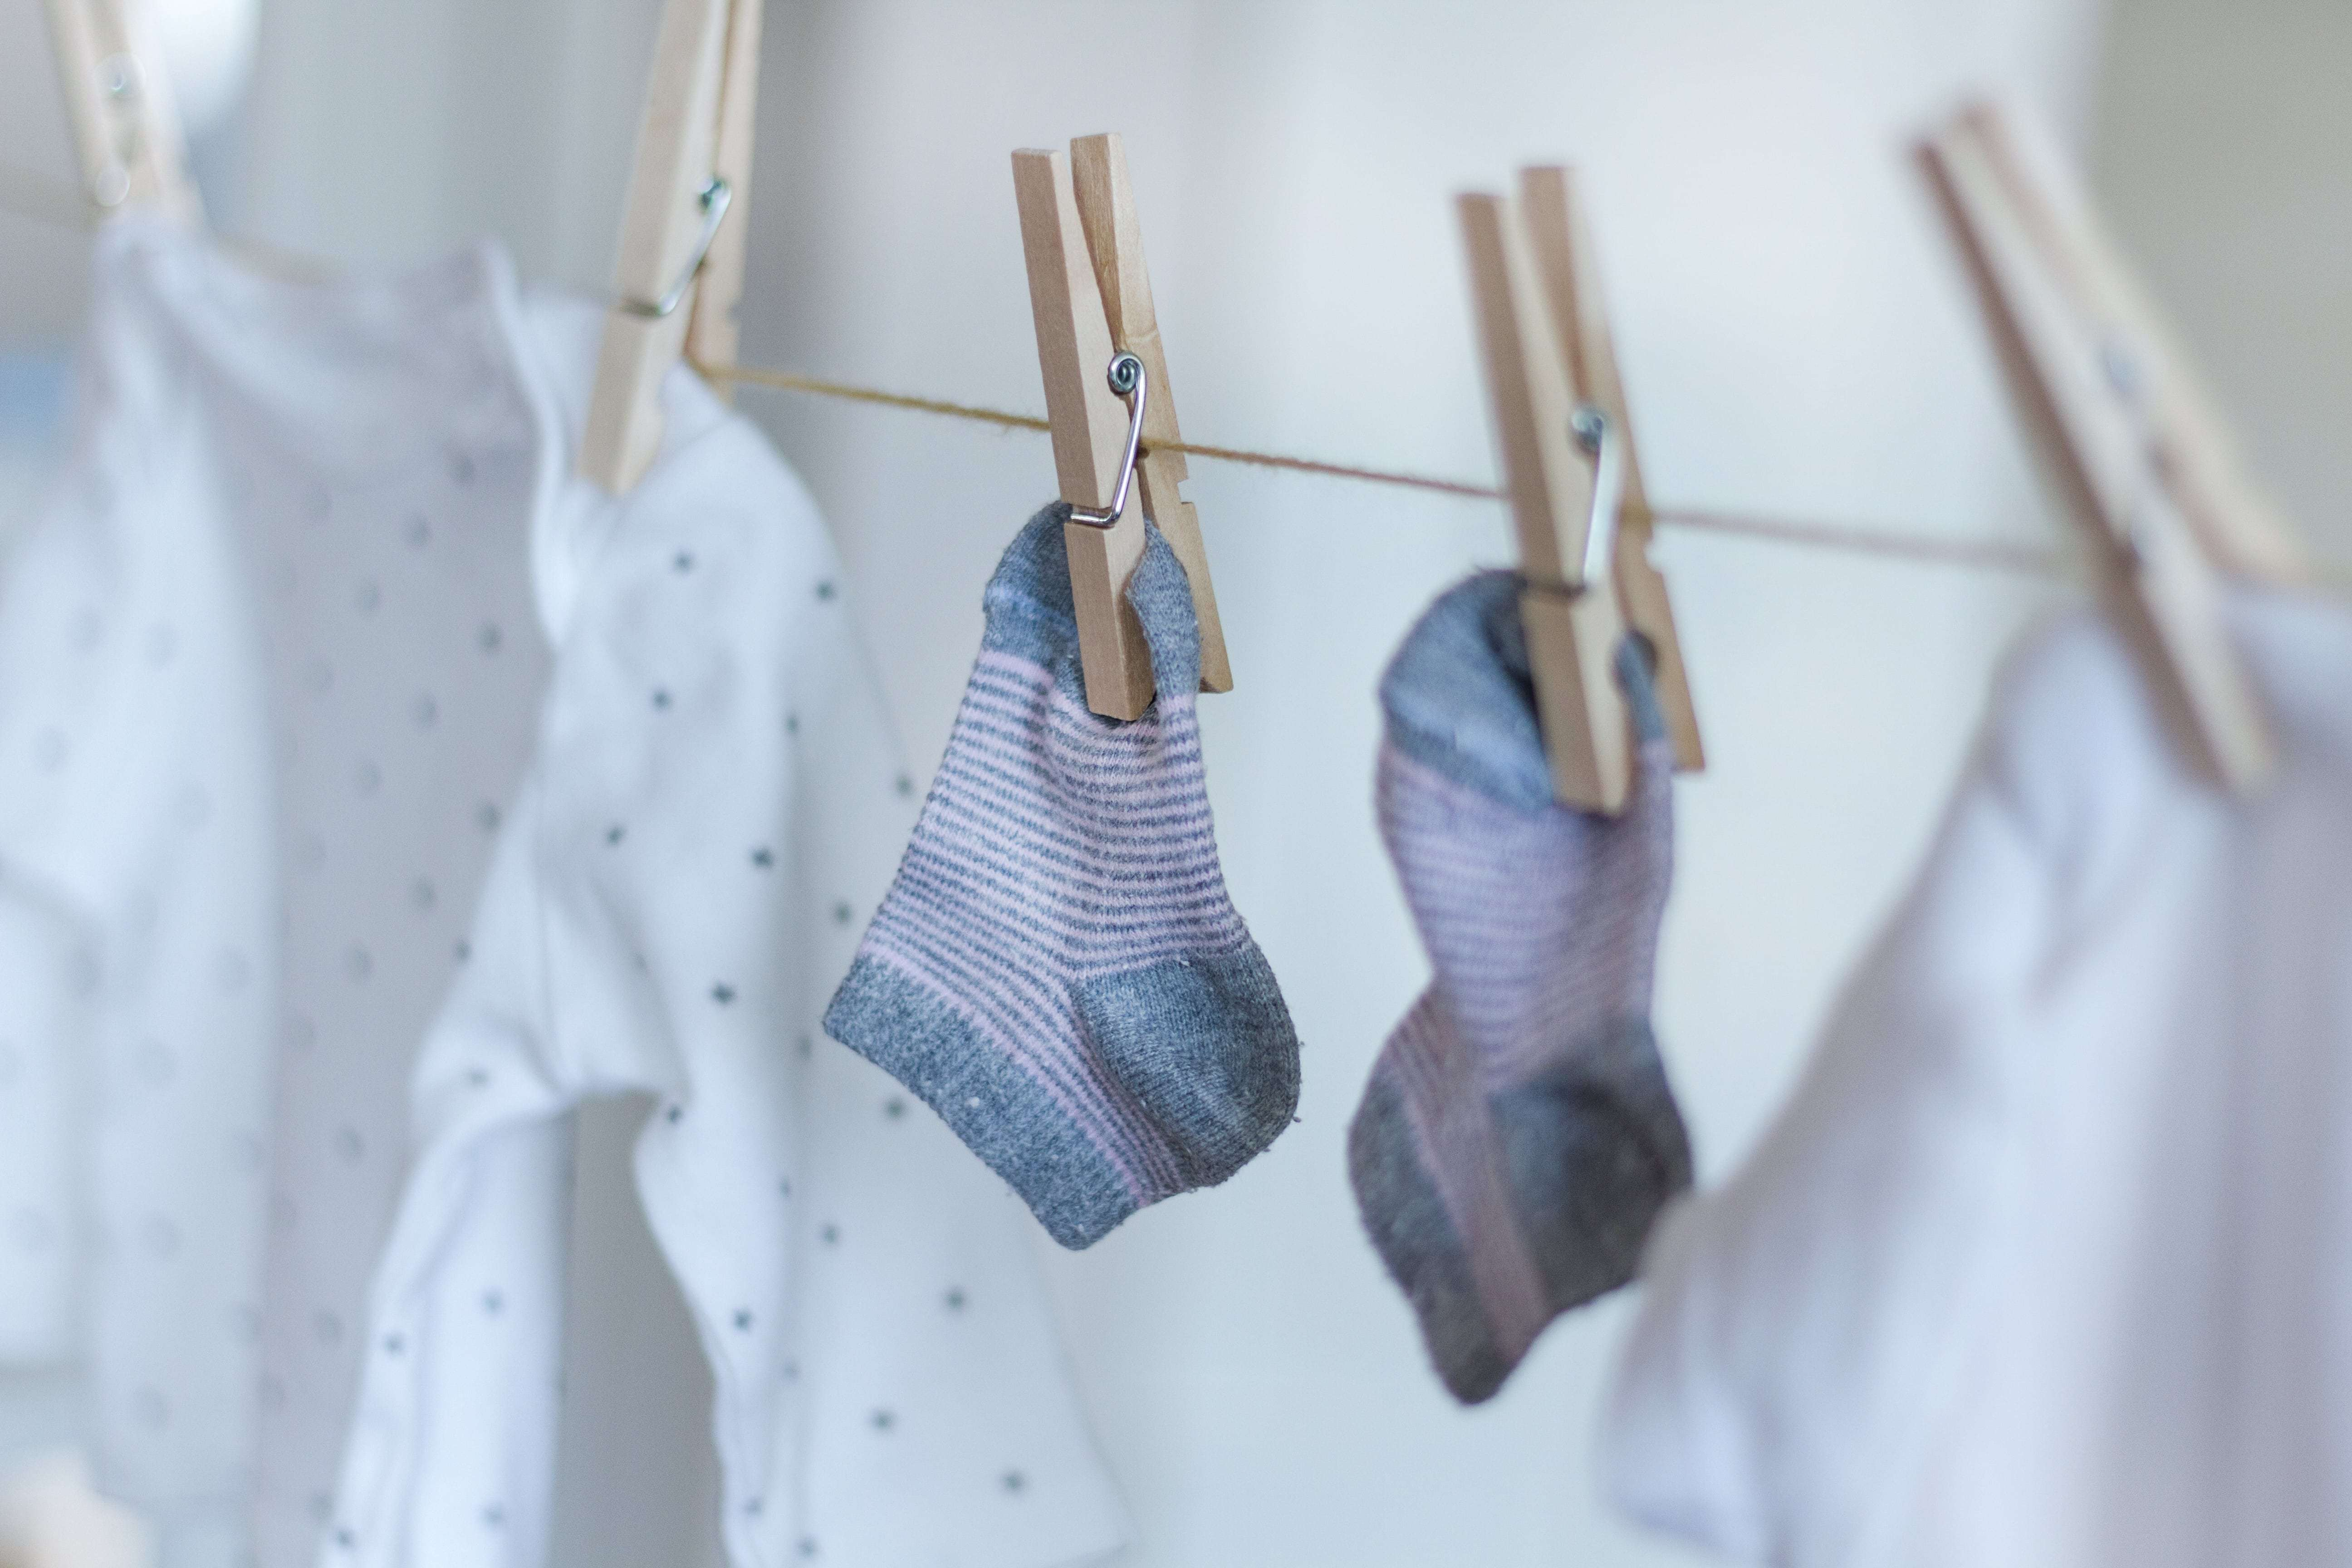 Hanging clothes and linens for line drying